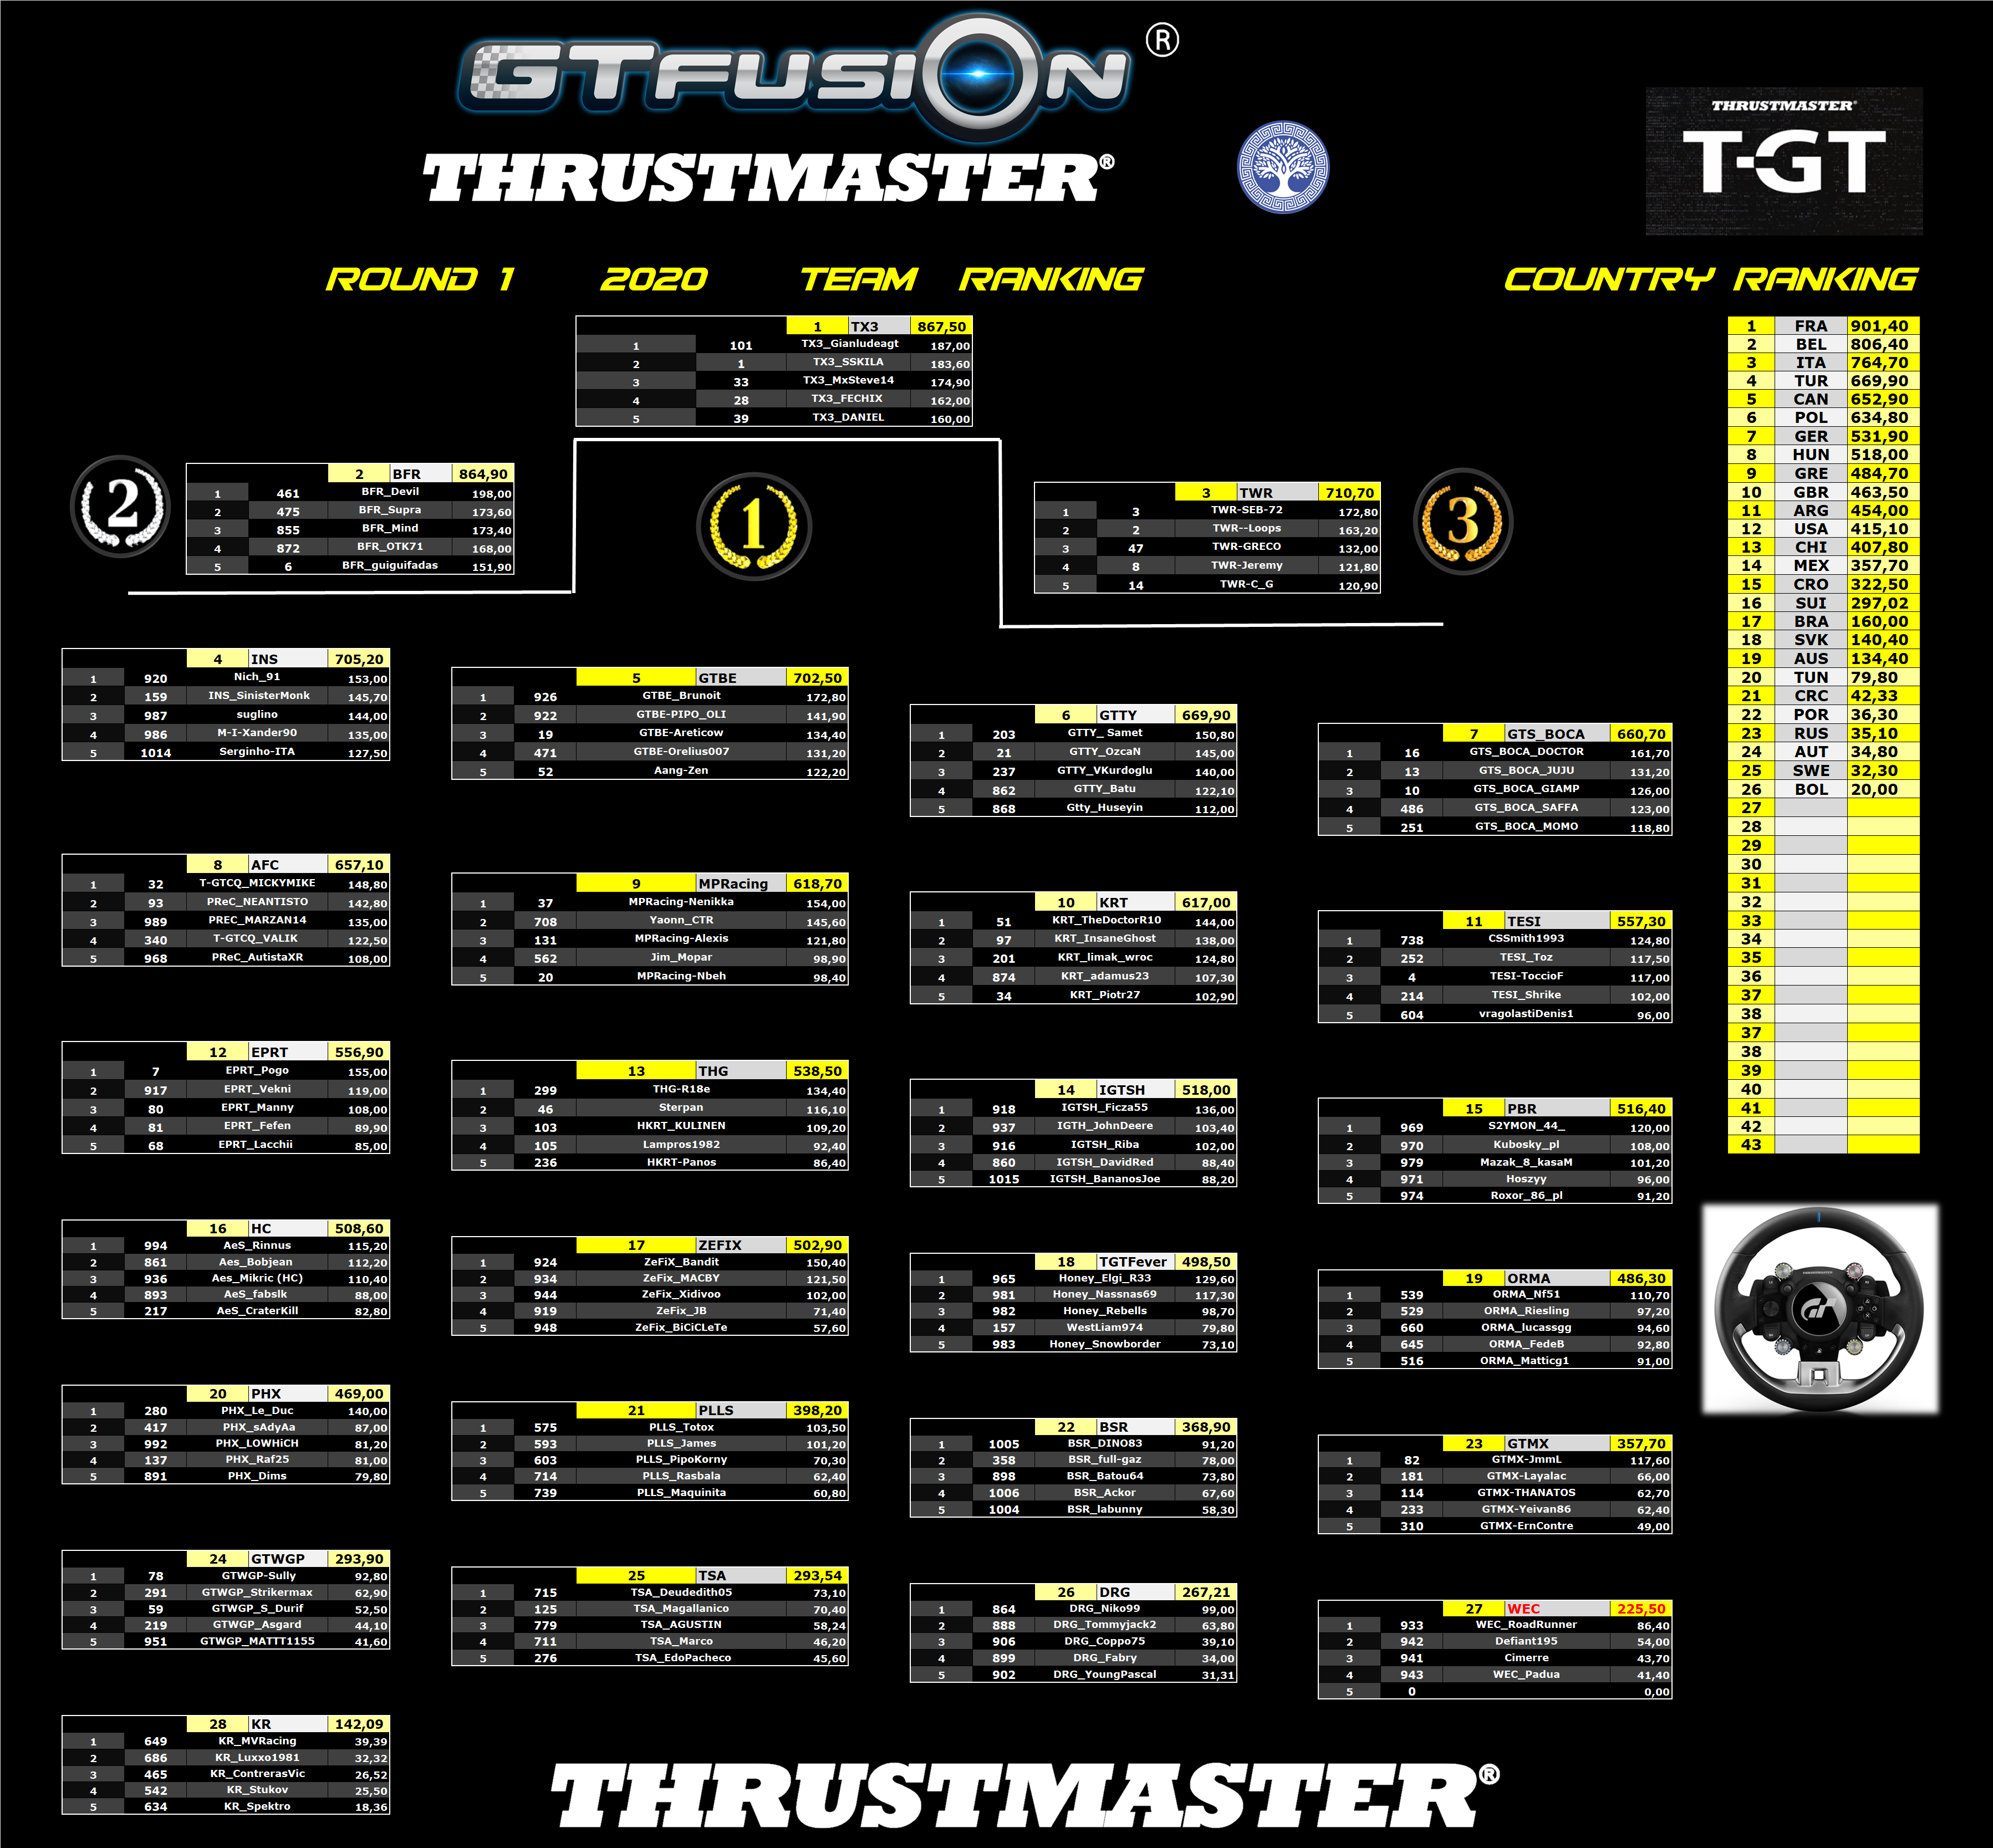 GTfusion GTSport World championship Round 1 2020 Team Country